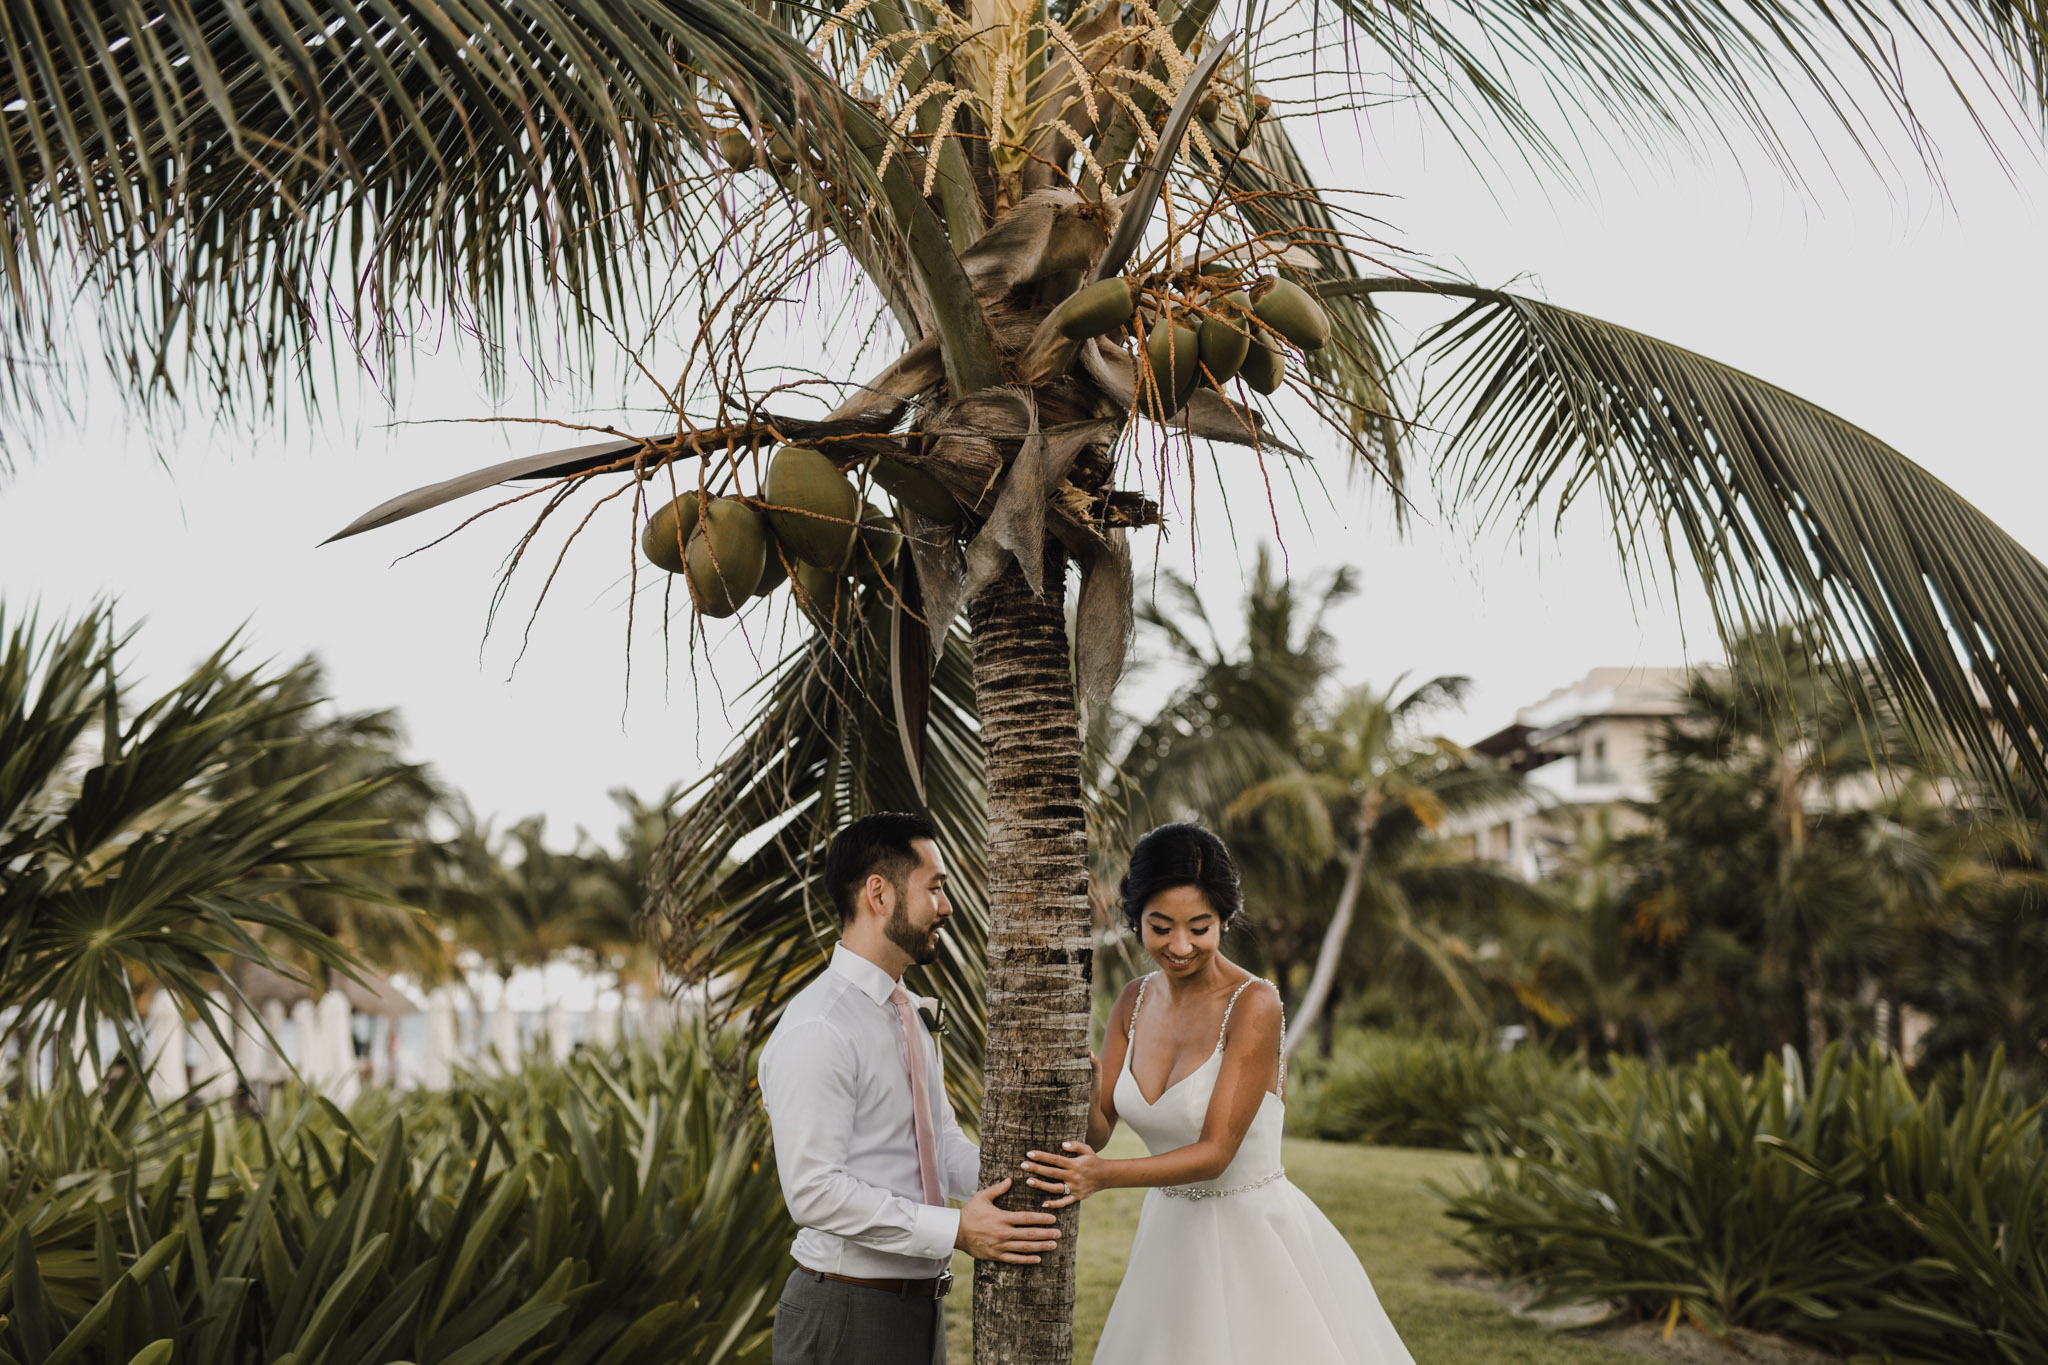 Cancun Mexico Wedding - hugging palm trees